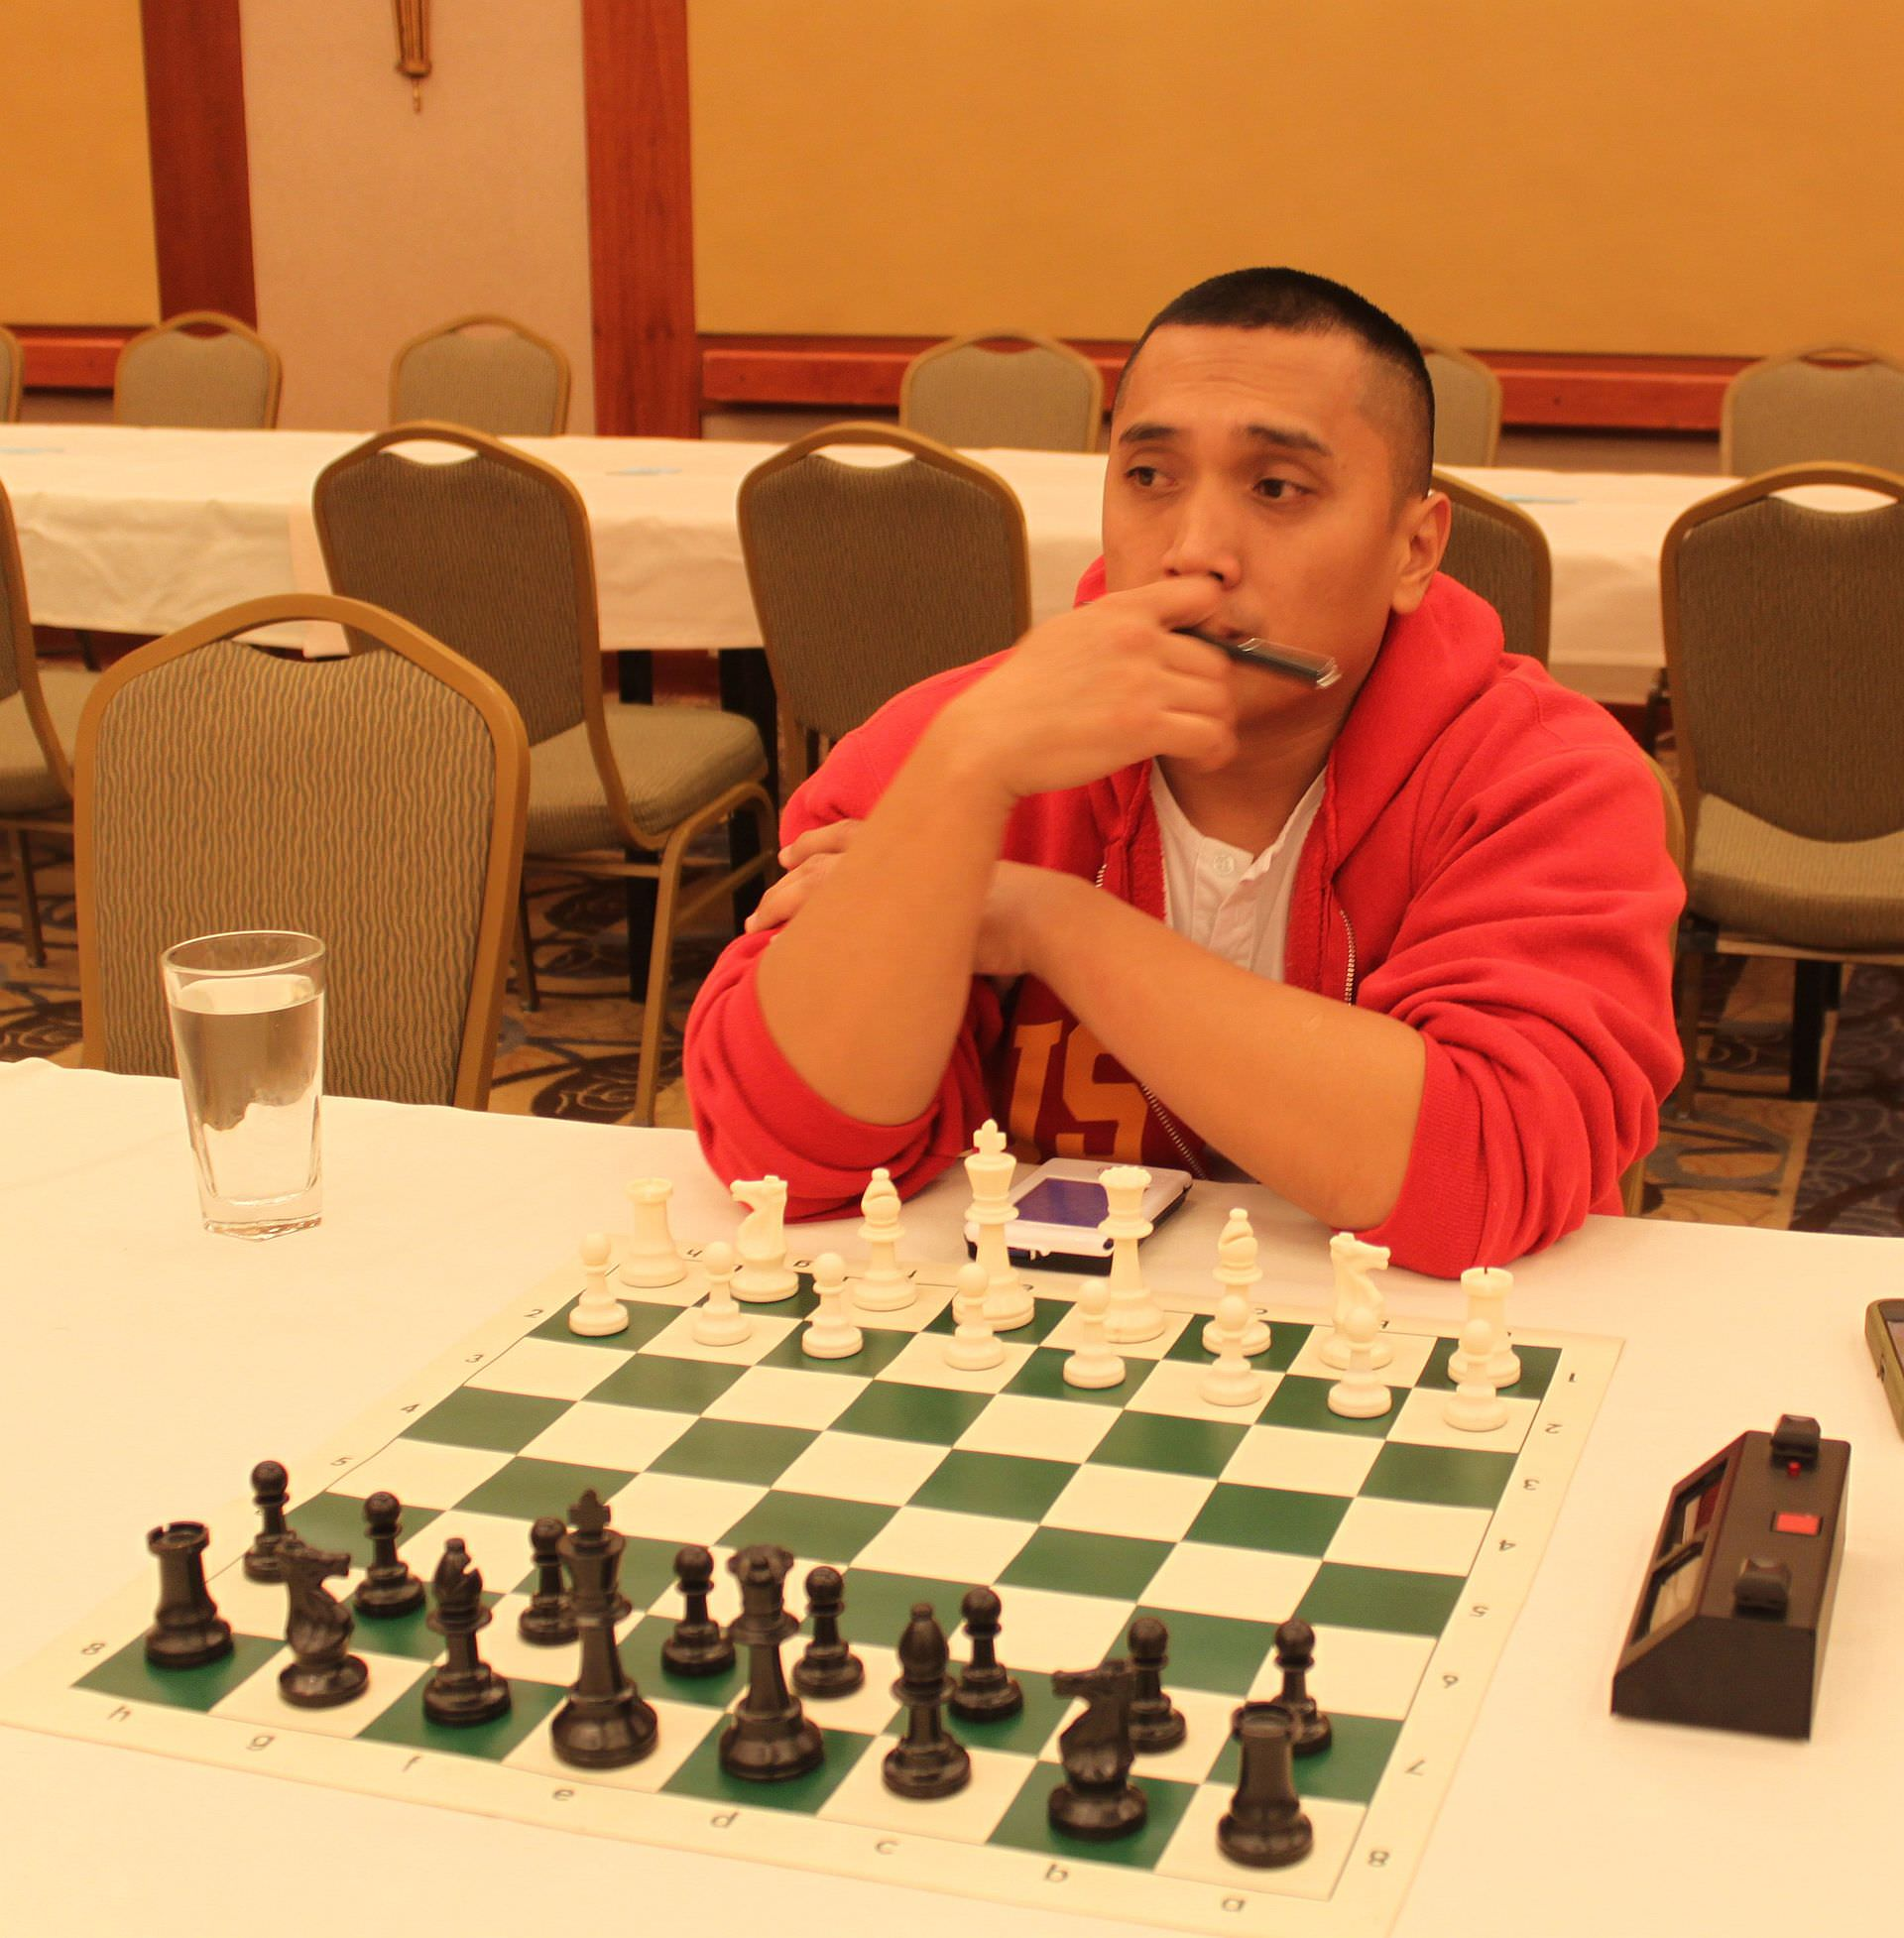 CCLA member Errol Acosta photographed at the chess board